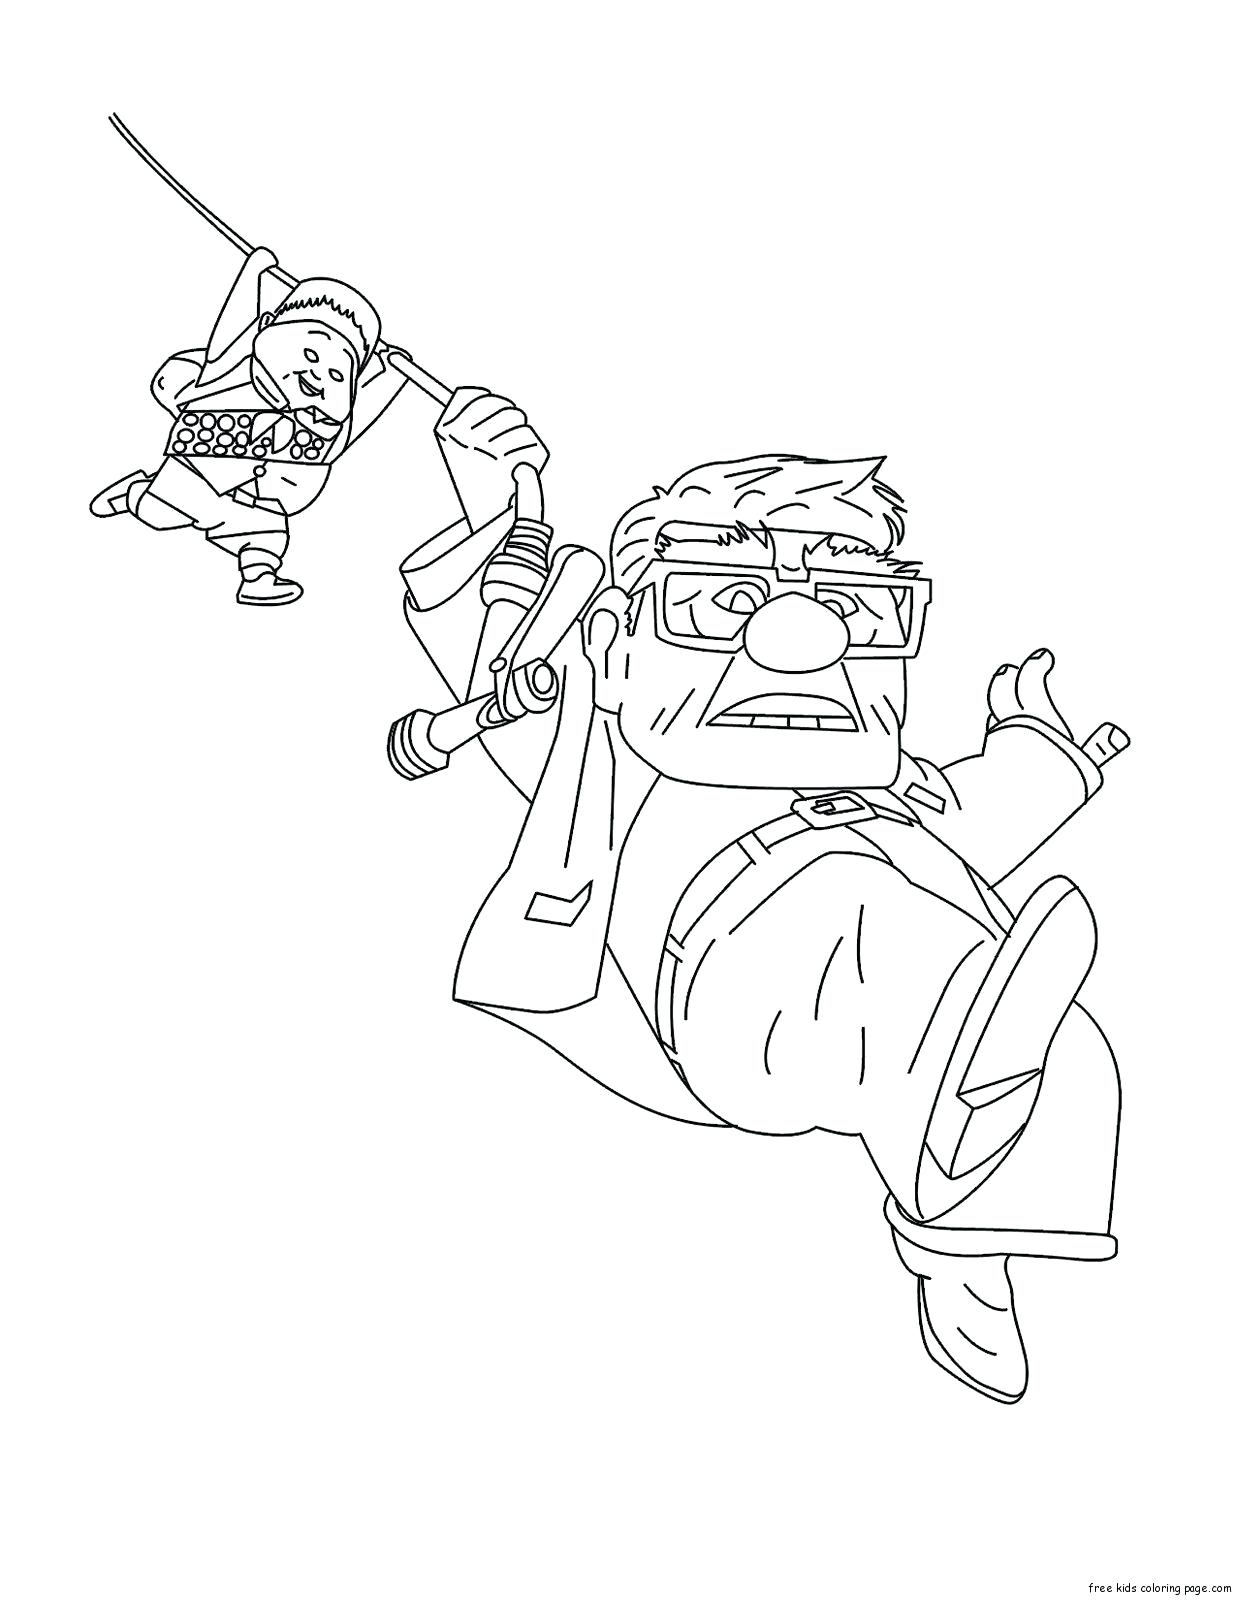 1236x1600 Coloring Purple Minion Coloring Pages